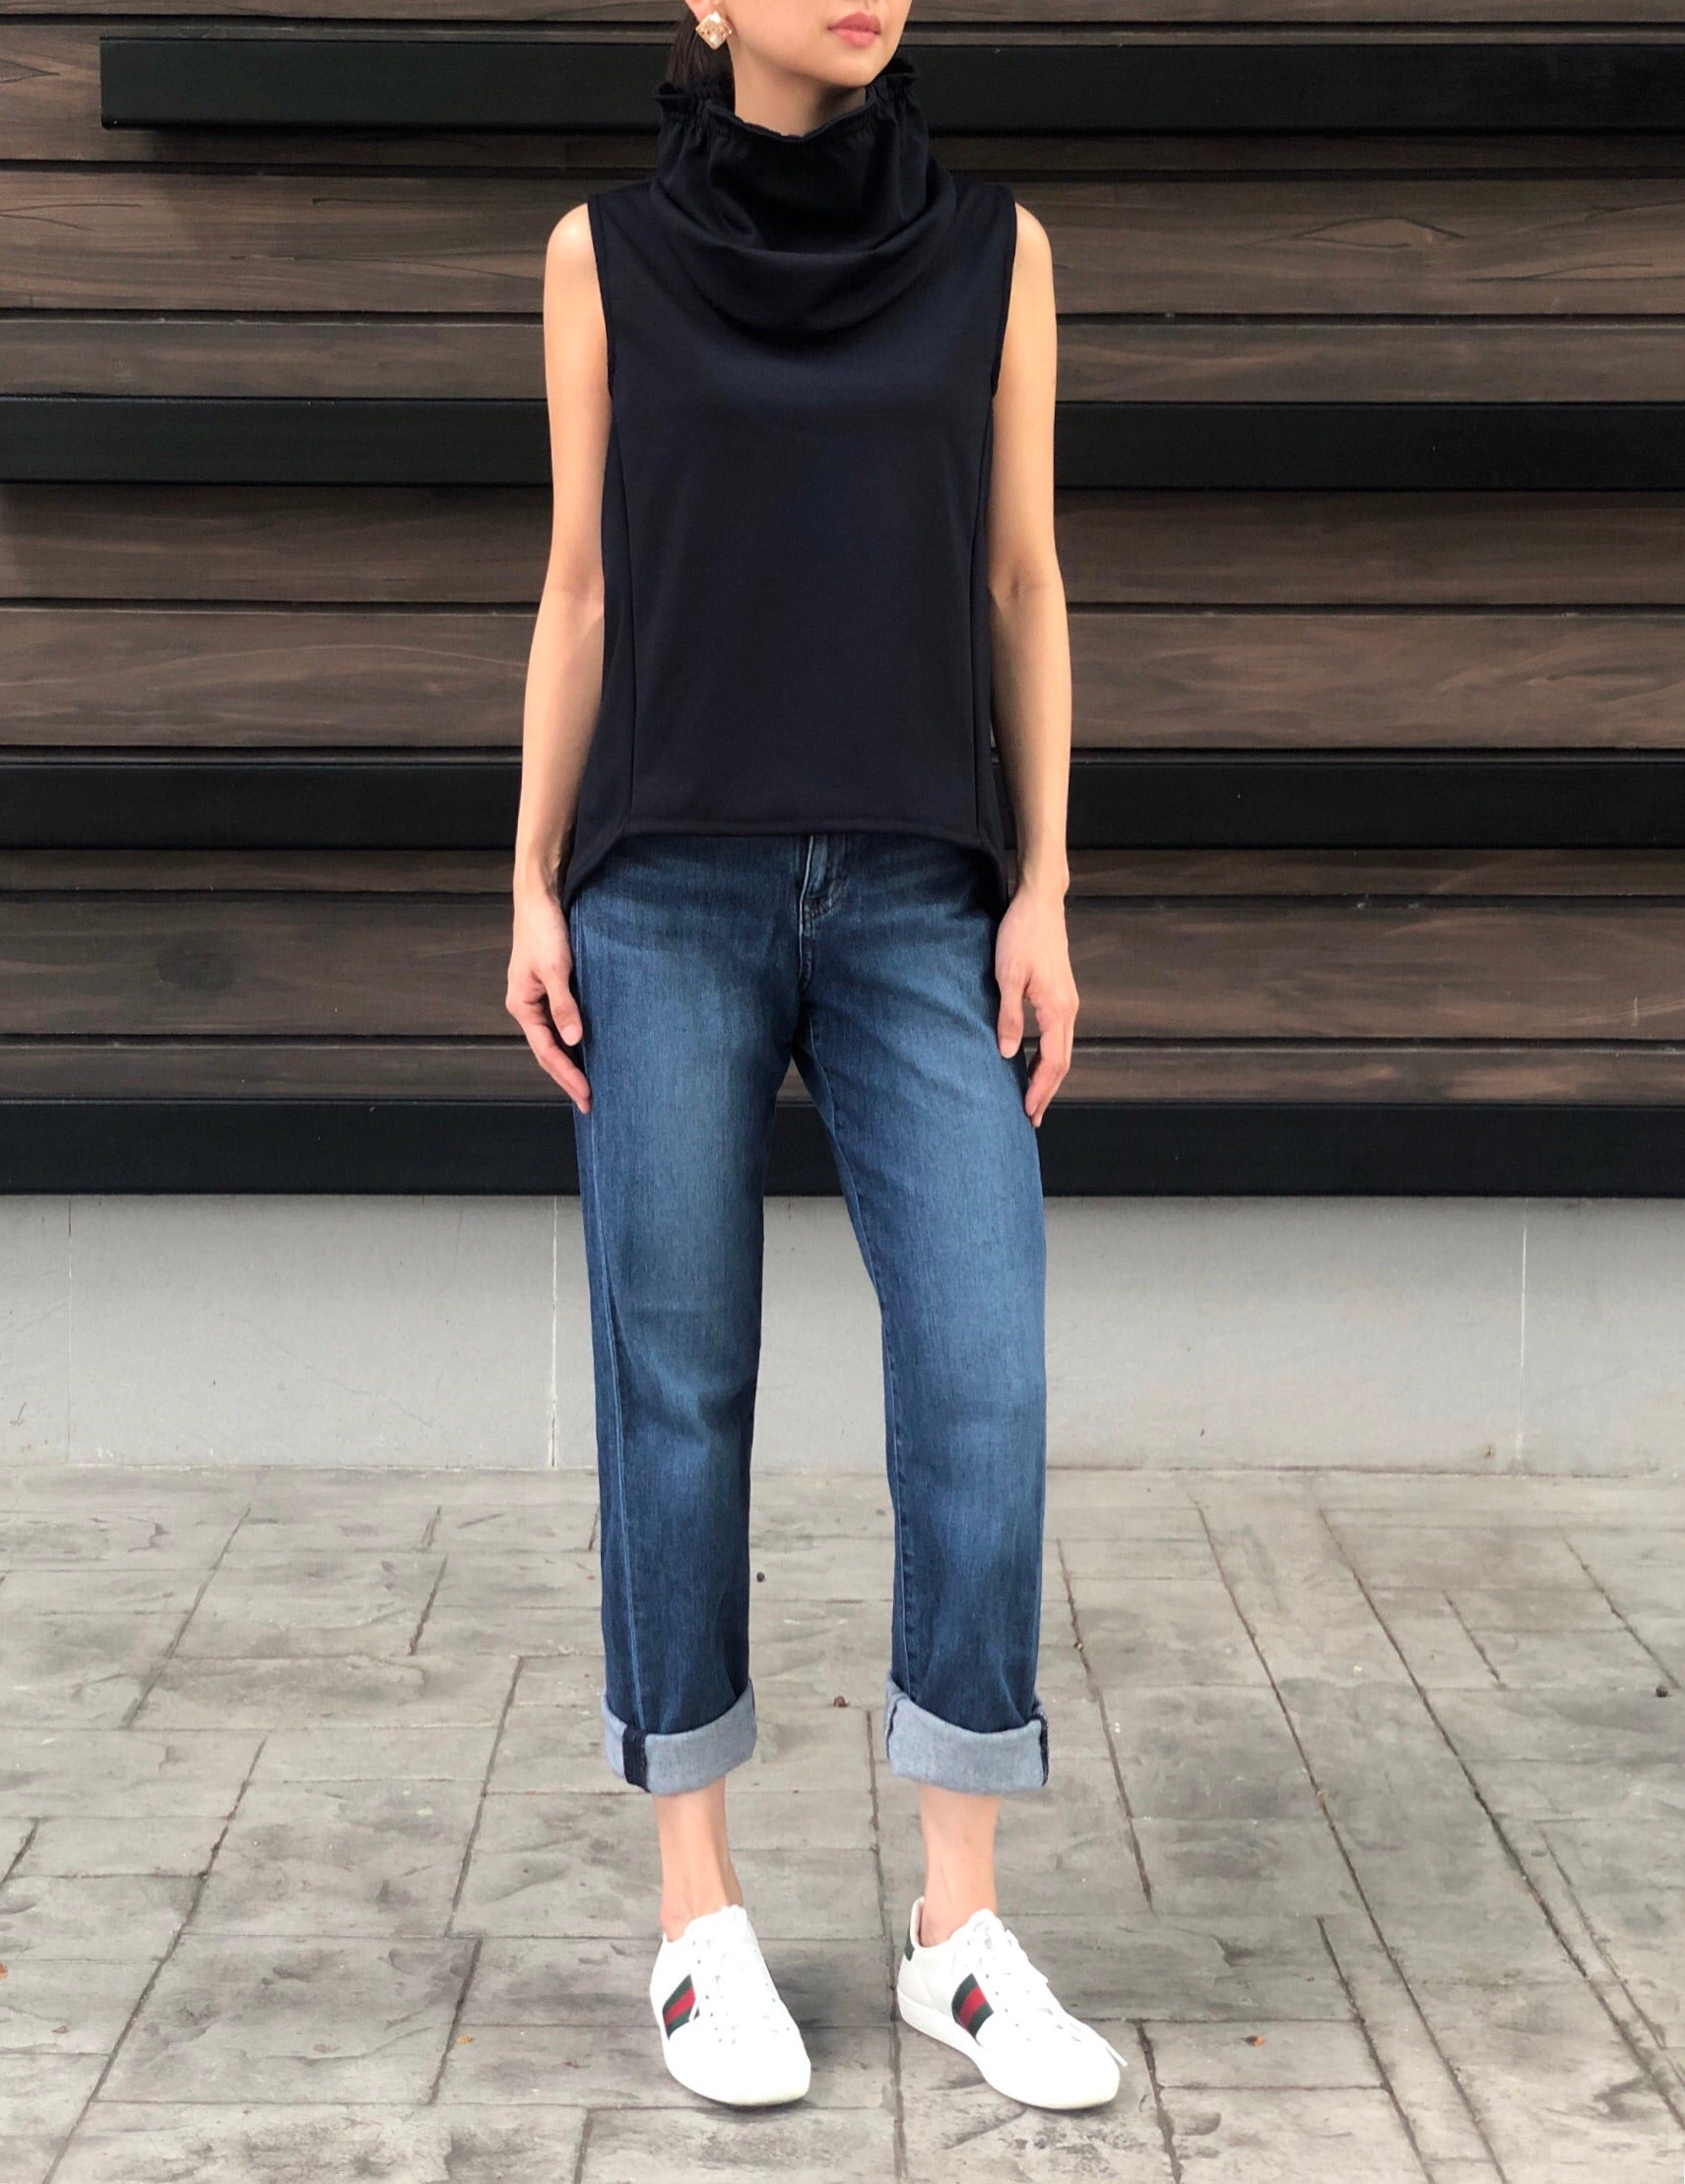 Charm T Neck Top in Navy